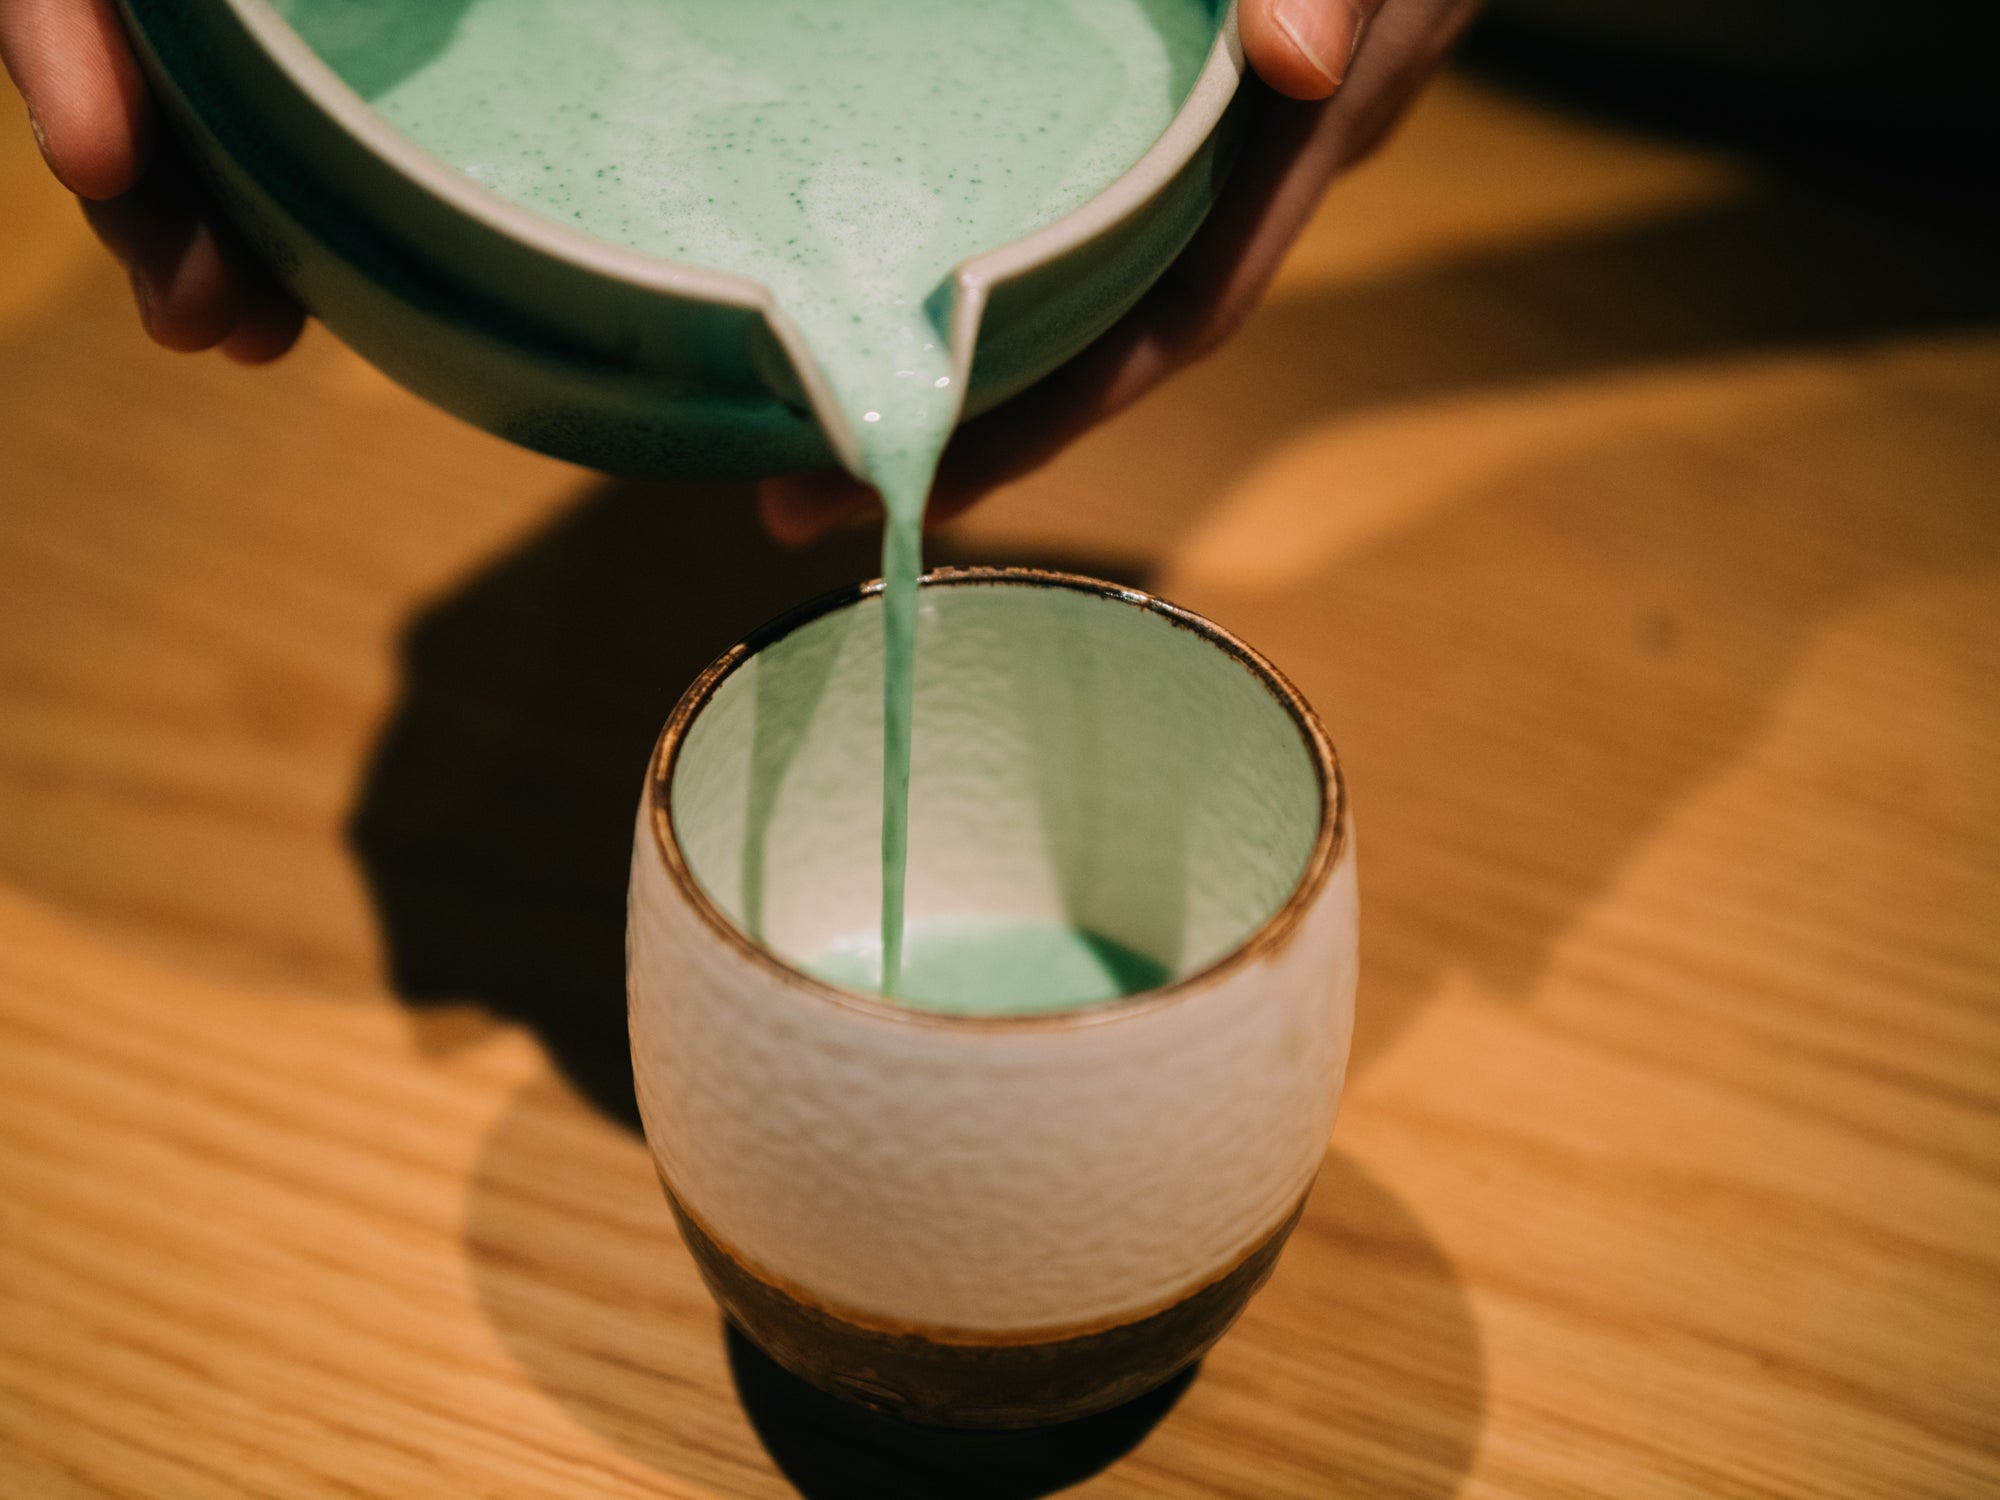 Make your own Matcha green tea latte at home